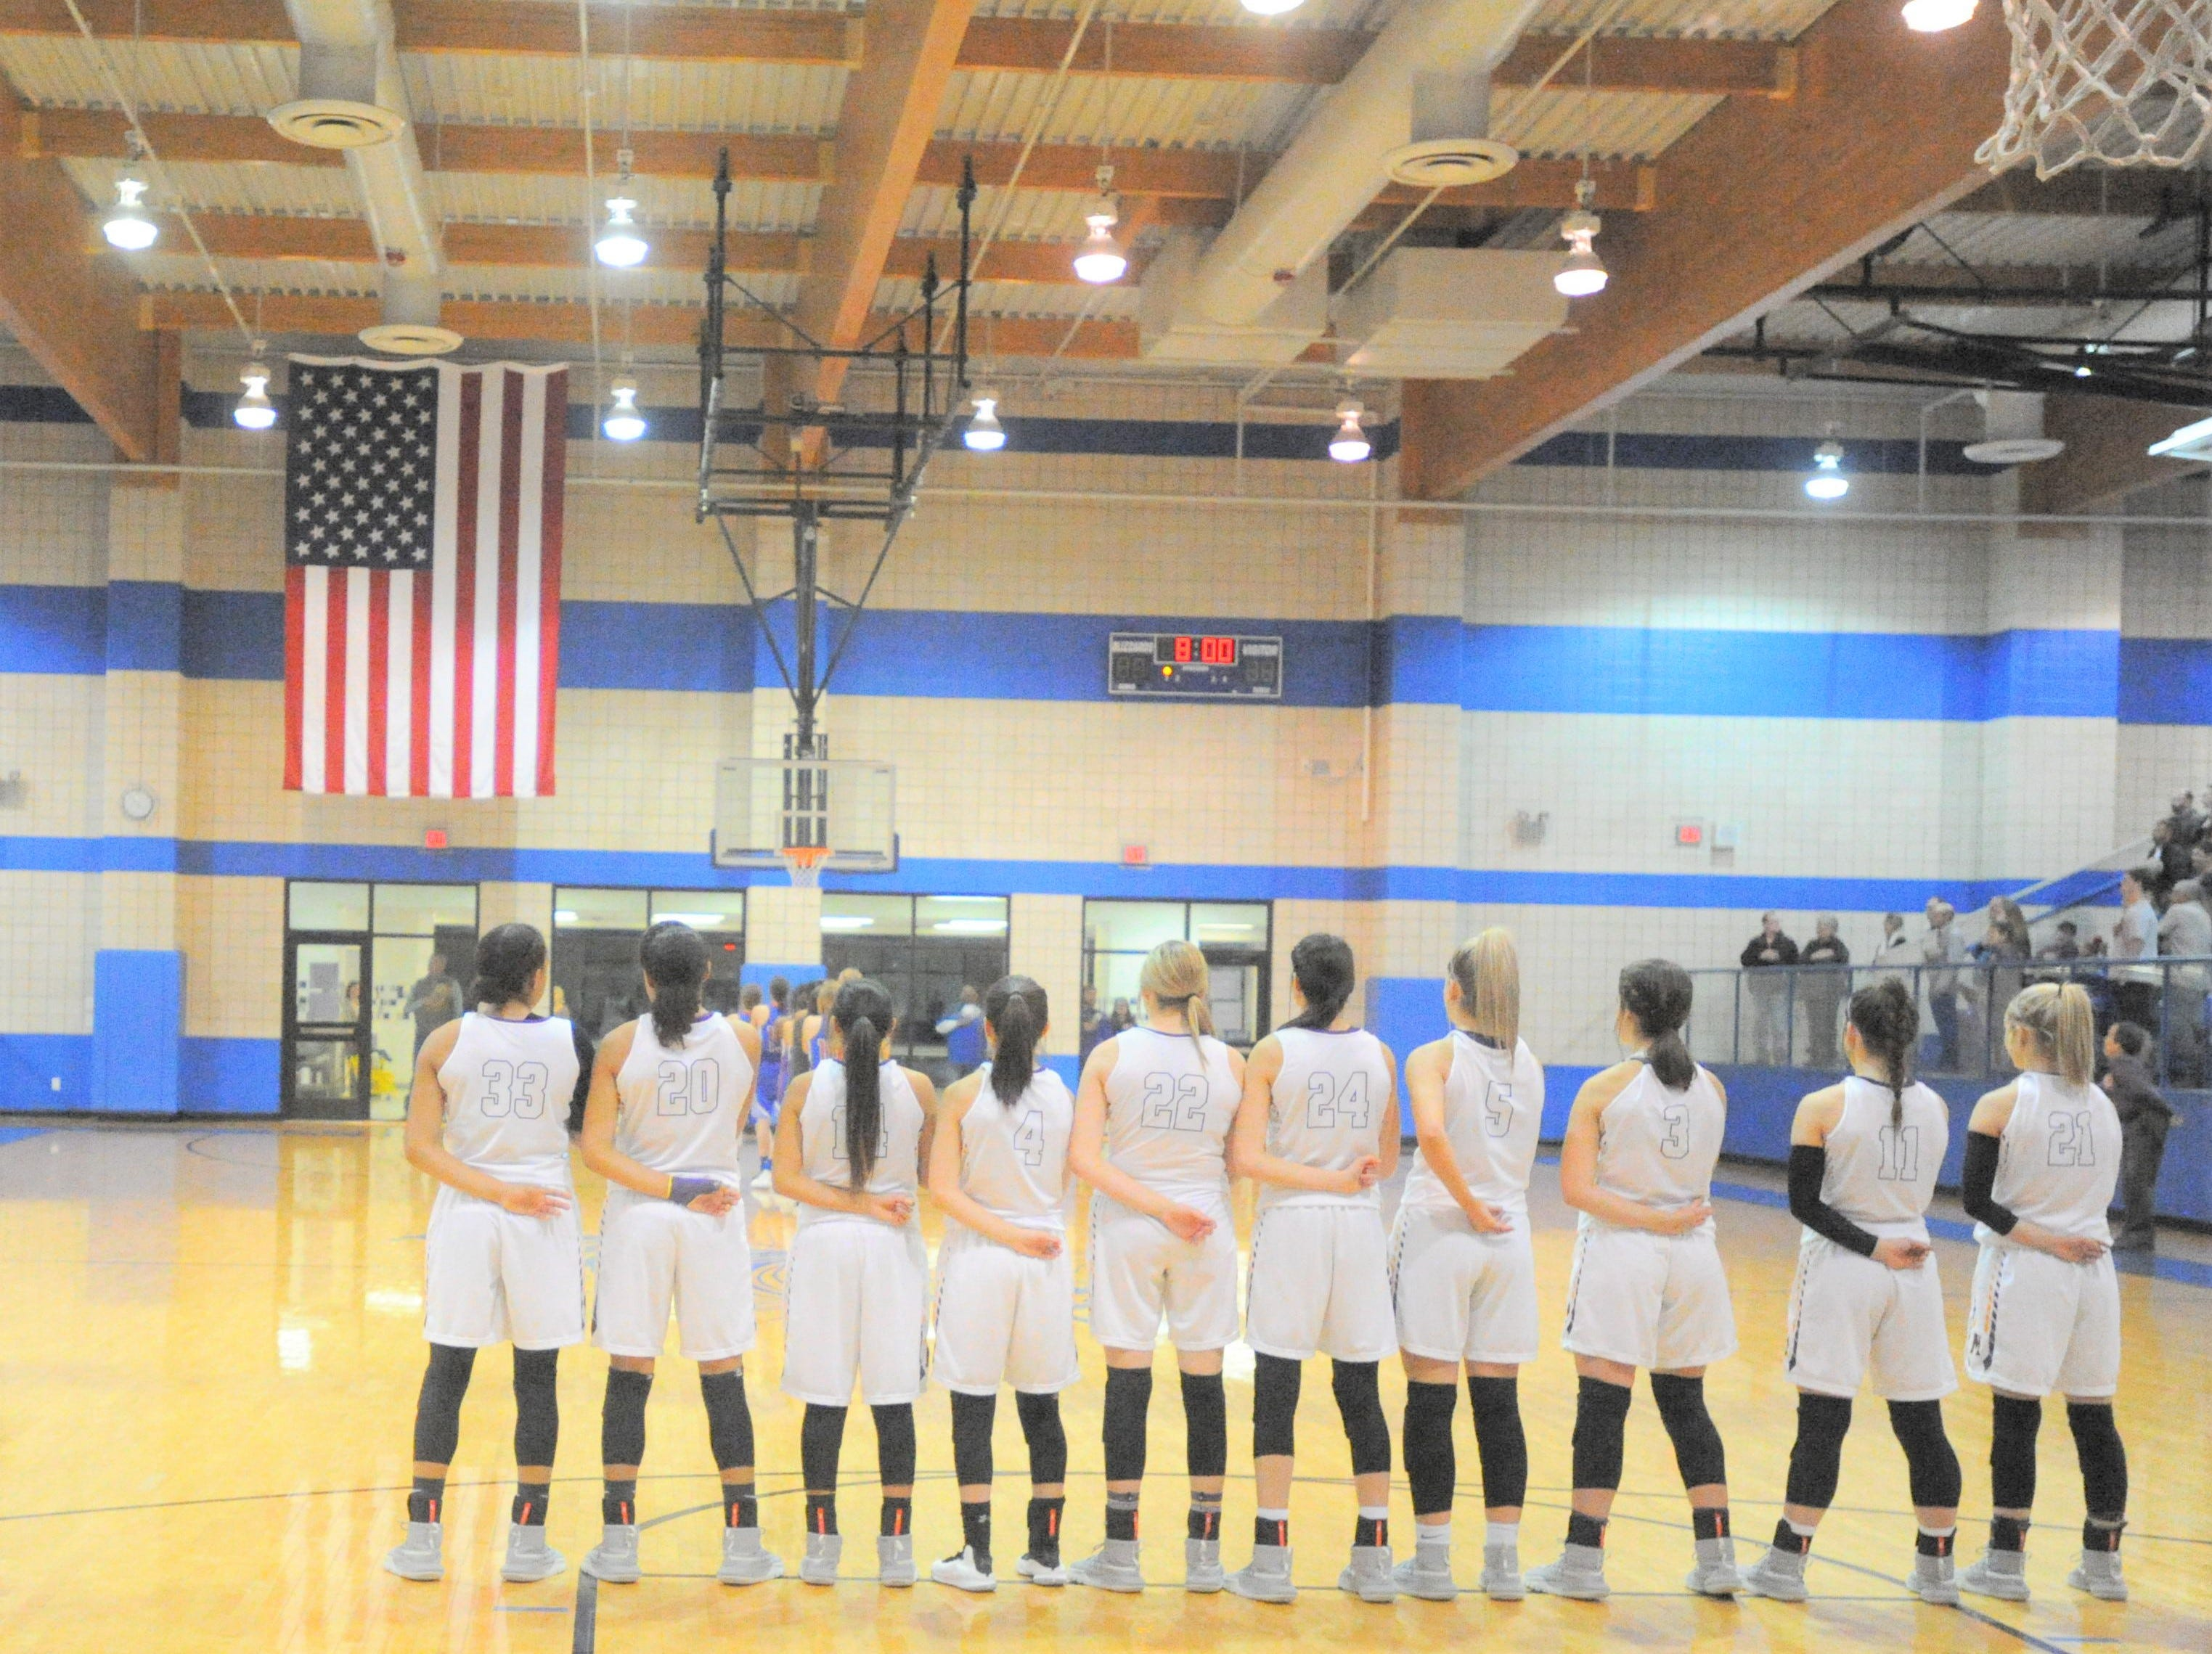 The Merkel girls basketball team stands during the national anthem before its bi-district playoff against Coleman at Winters High School on Monday, Feb. 11, 2019.